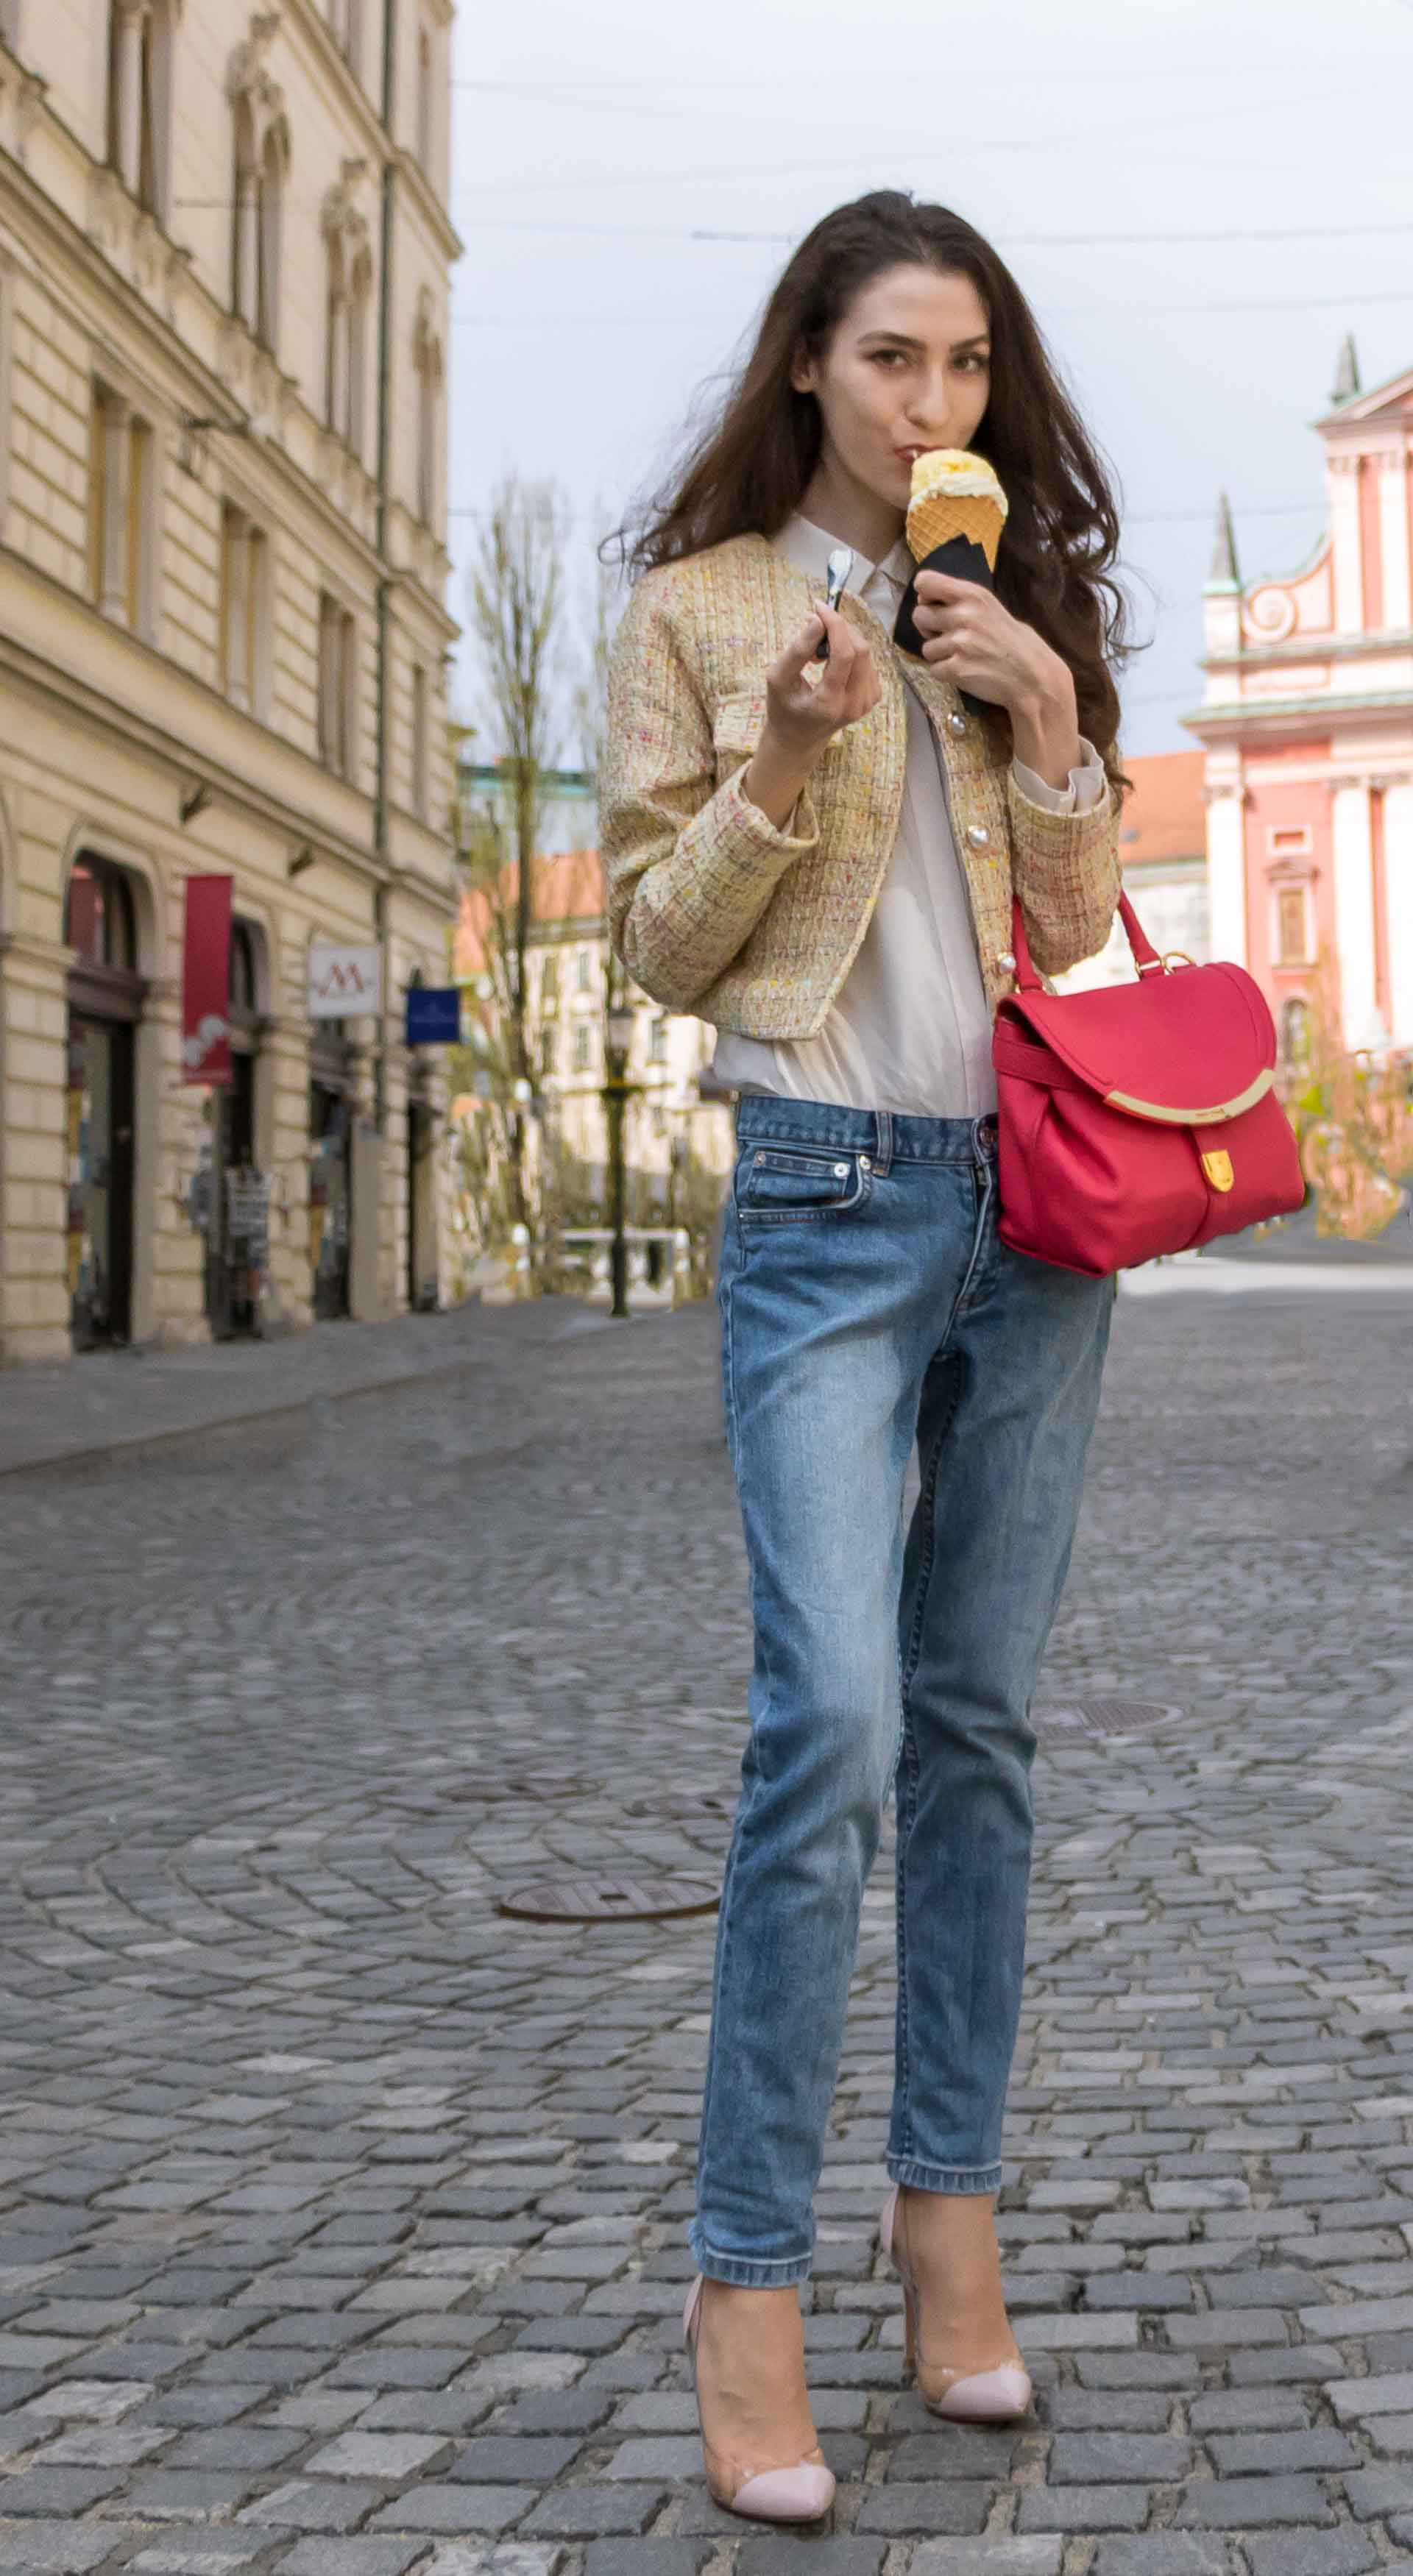 Veronika Lipar Fashion Blogger of Brunette from Wall Street dressed in chic casual everyday spring outfit, the yellow tweed jacket from Storets, blue jeans from A.P.C., blush Gianvito Rossi plexi pumps, pink top handle bag and organza white shirt on the street licking ice cream